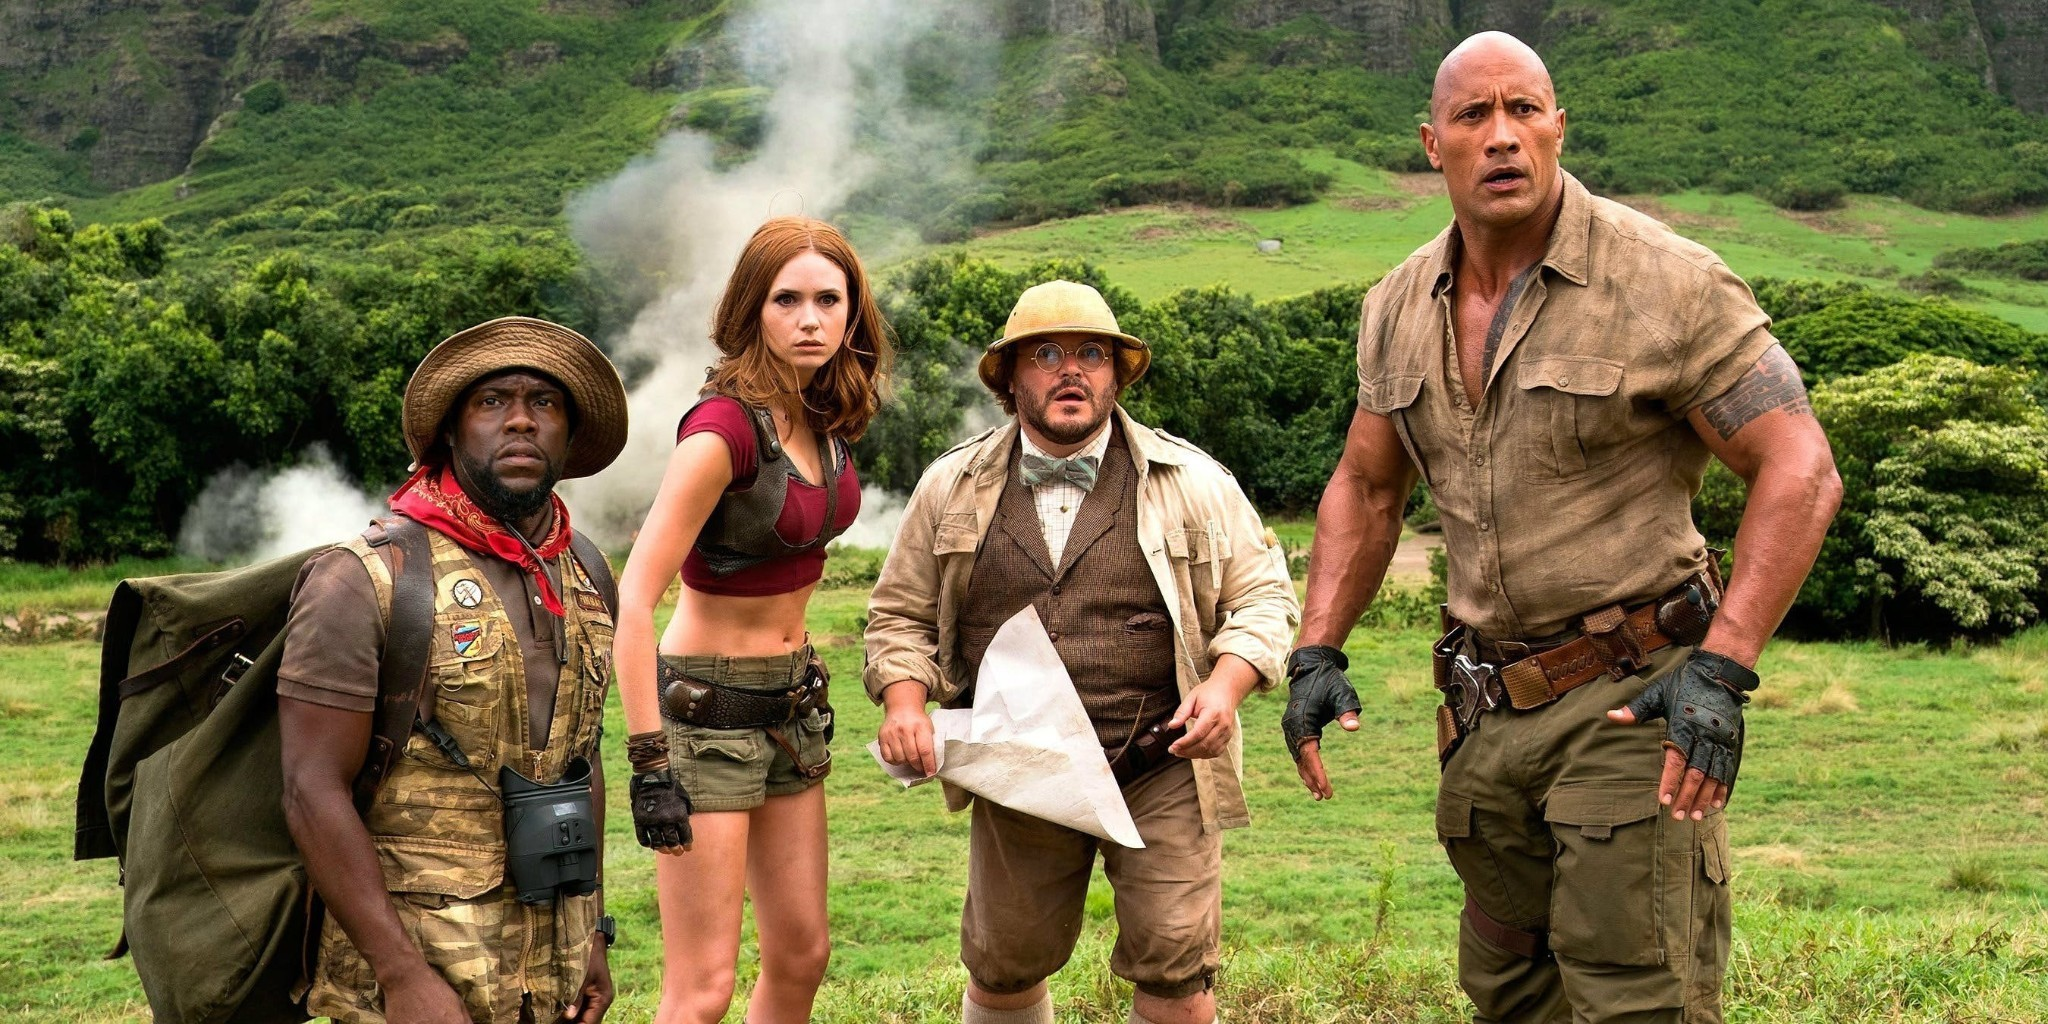 Jumanji: Welcome to the Jungle takes an old concept in an appealing new direction